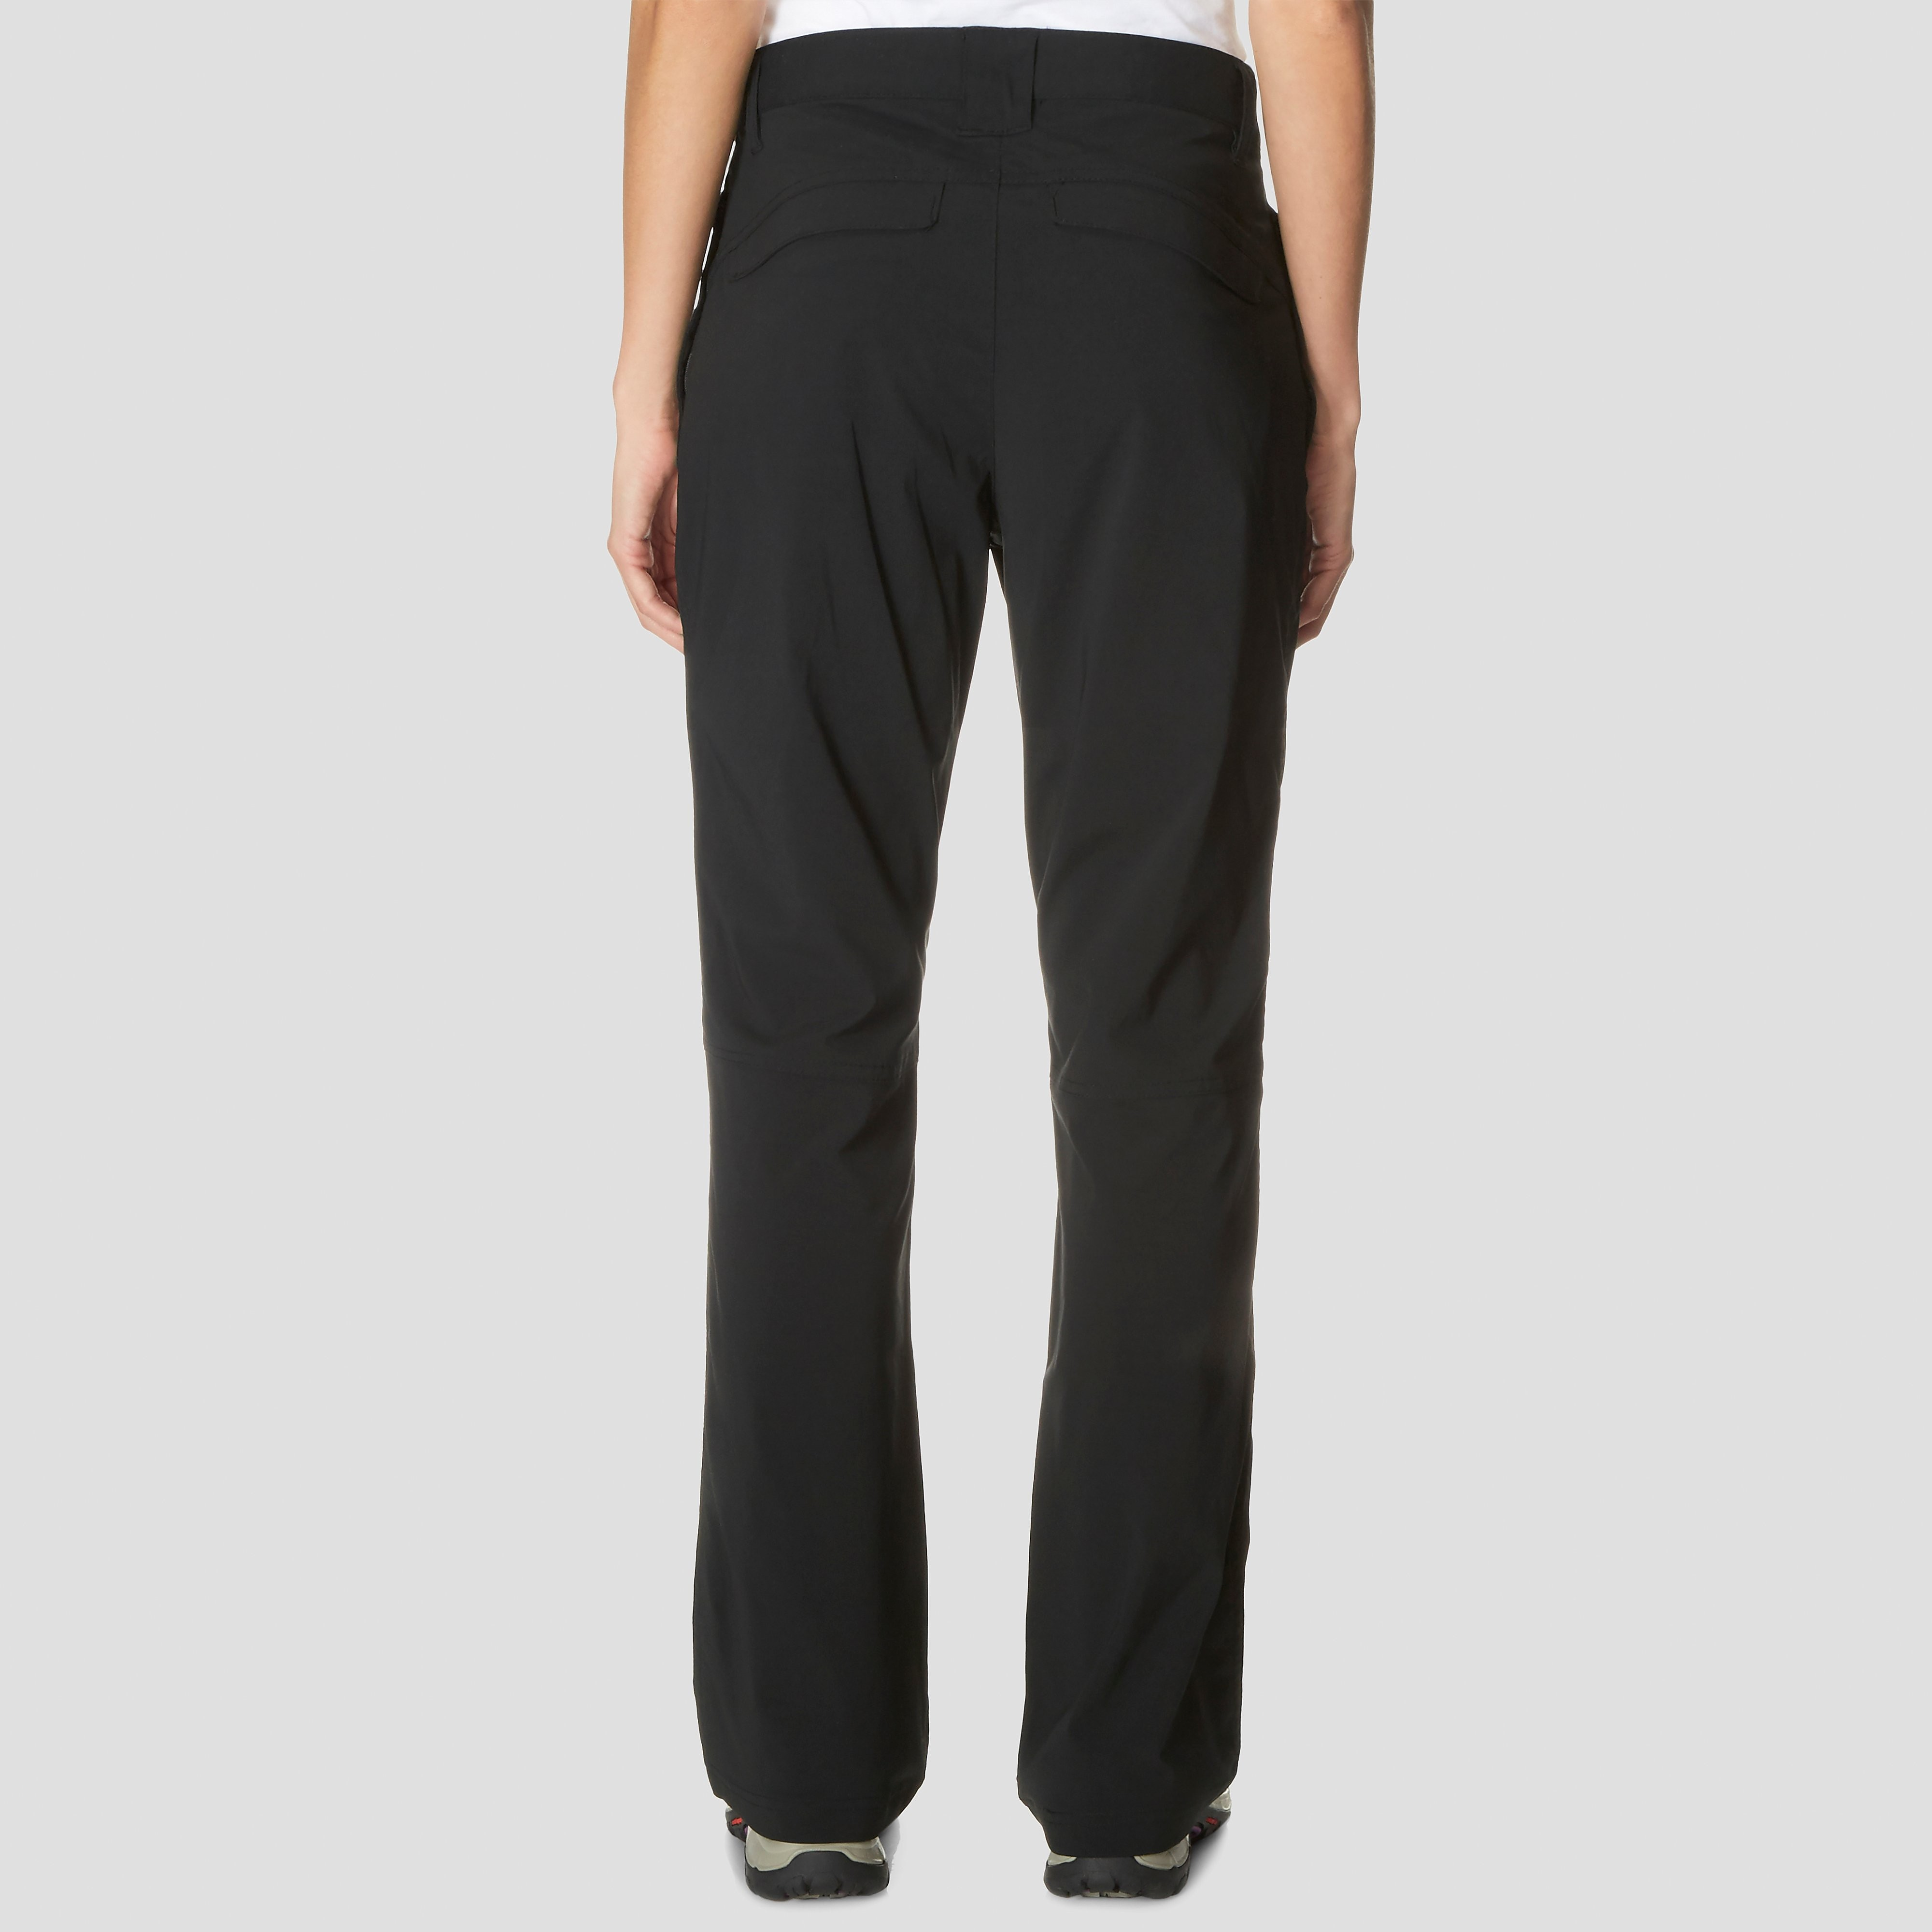 Peter Storm Women's Long Stretch Trousers